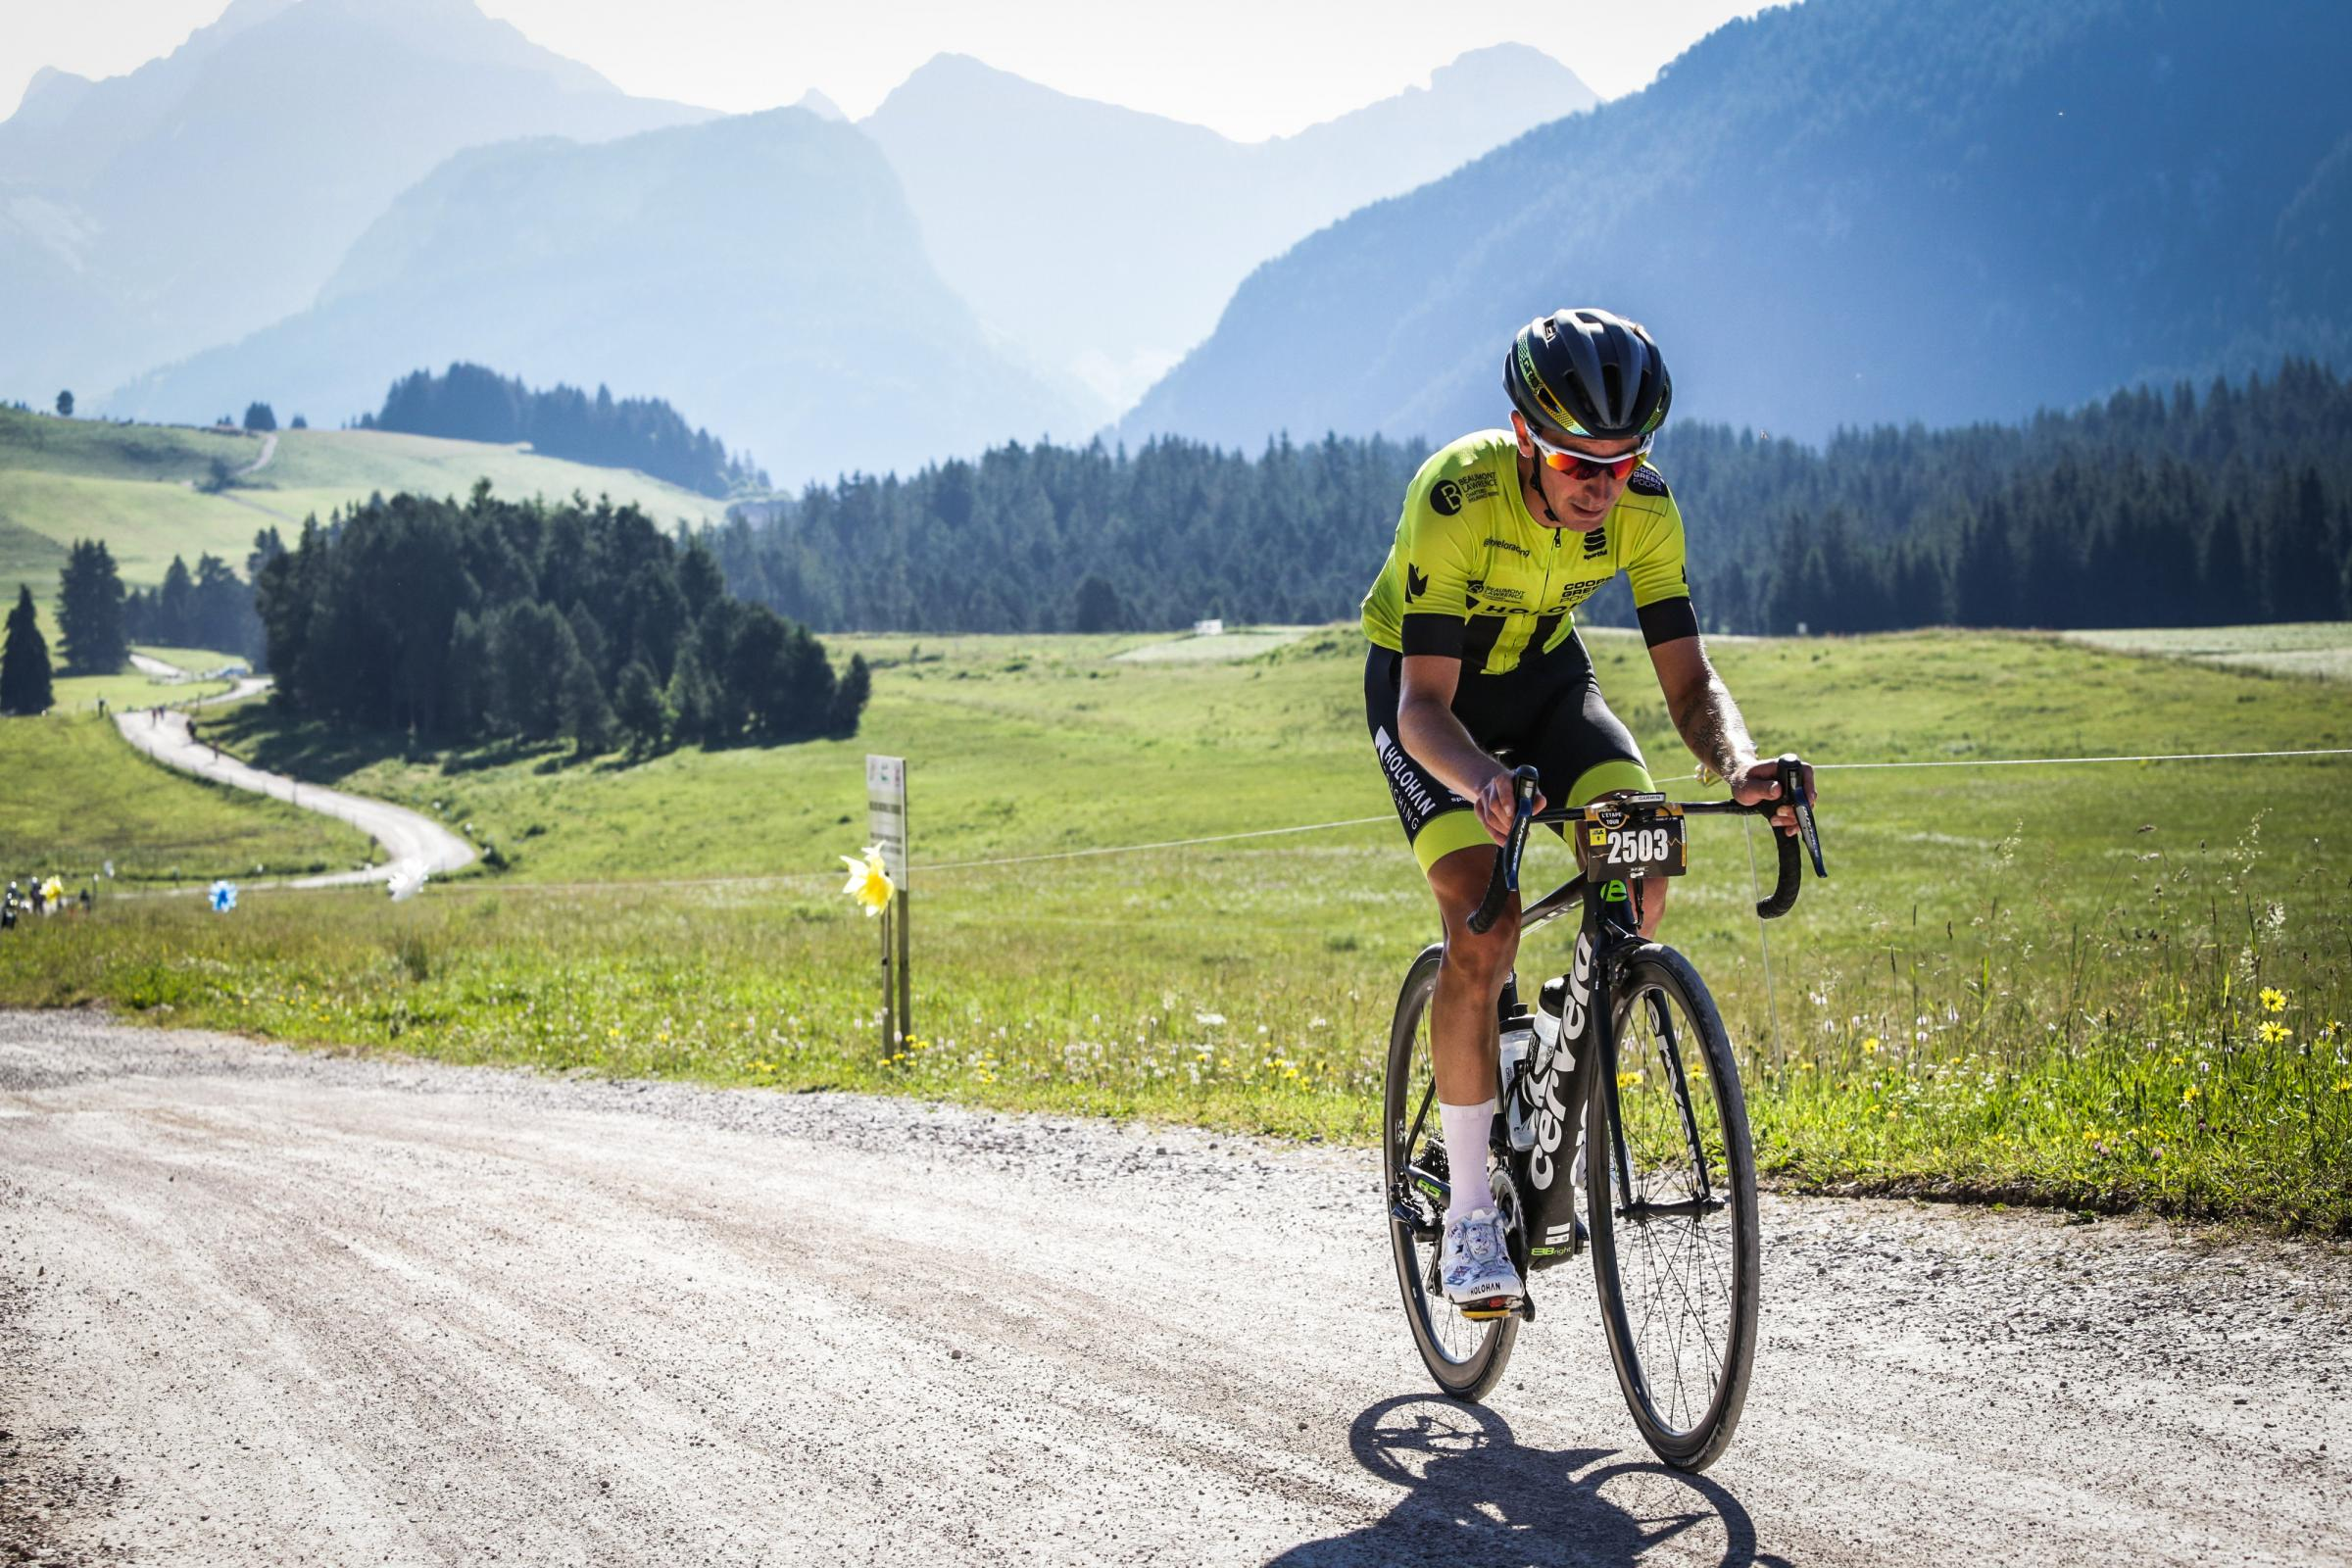 Rhino Velo Team will take on the Haute Route multi-day series